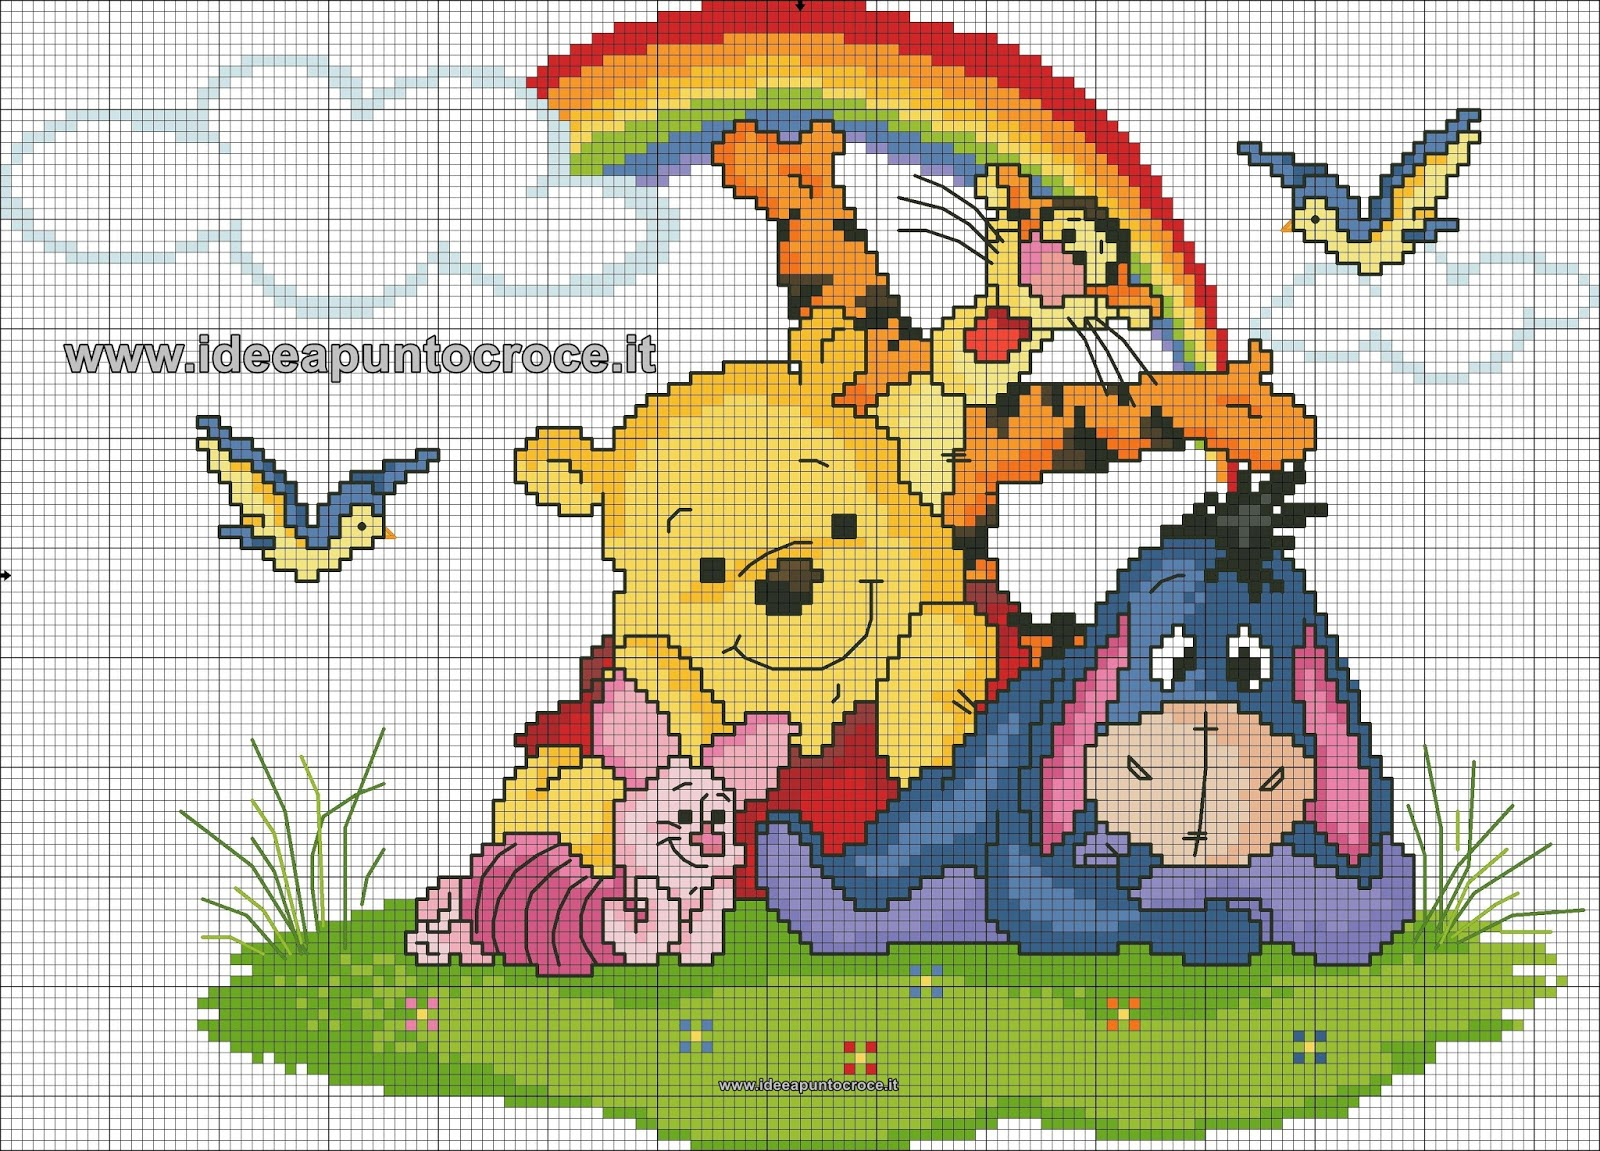 hi the pooh Watch online and download cartoon the new adventures of winnie the pooh episode 003p2 balloonatics in high quality various formats from 240p to 720p hd (or even 1080p.